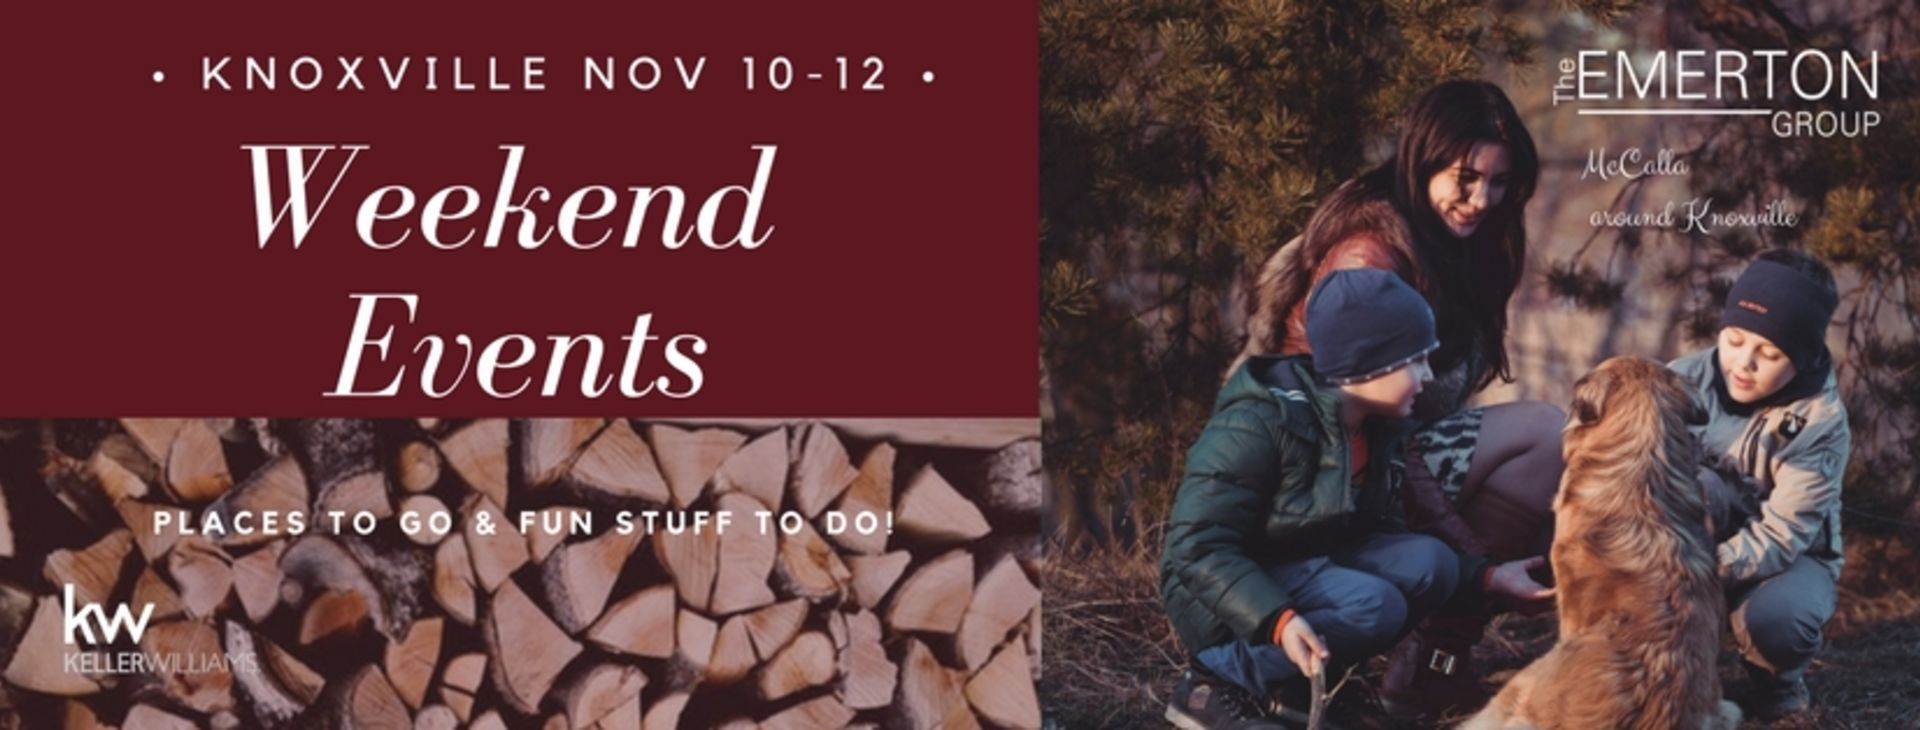 Weekend Events November 10th-12th